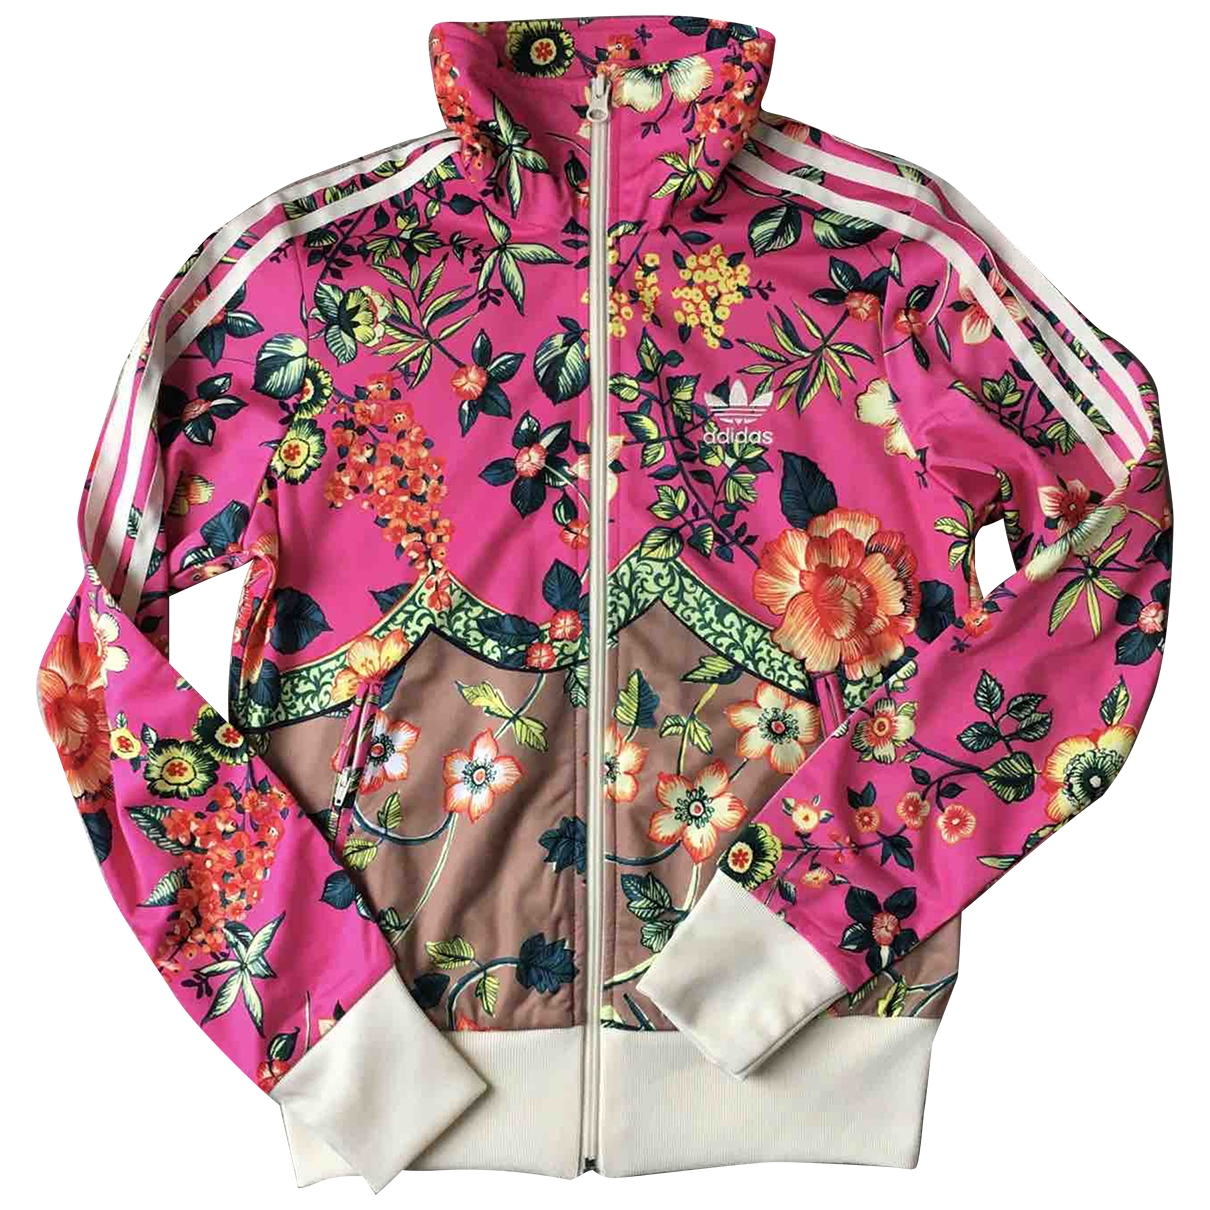 Adidas \N Pink jacket for Women 38 IT